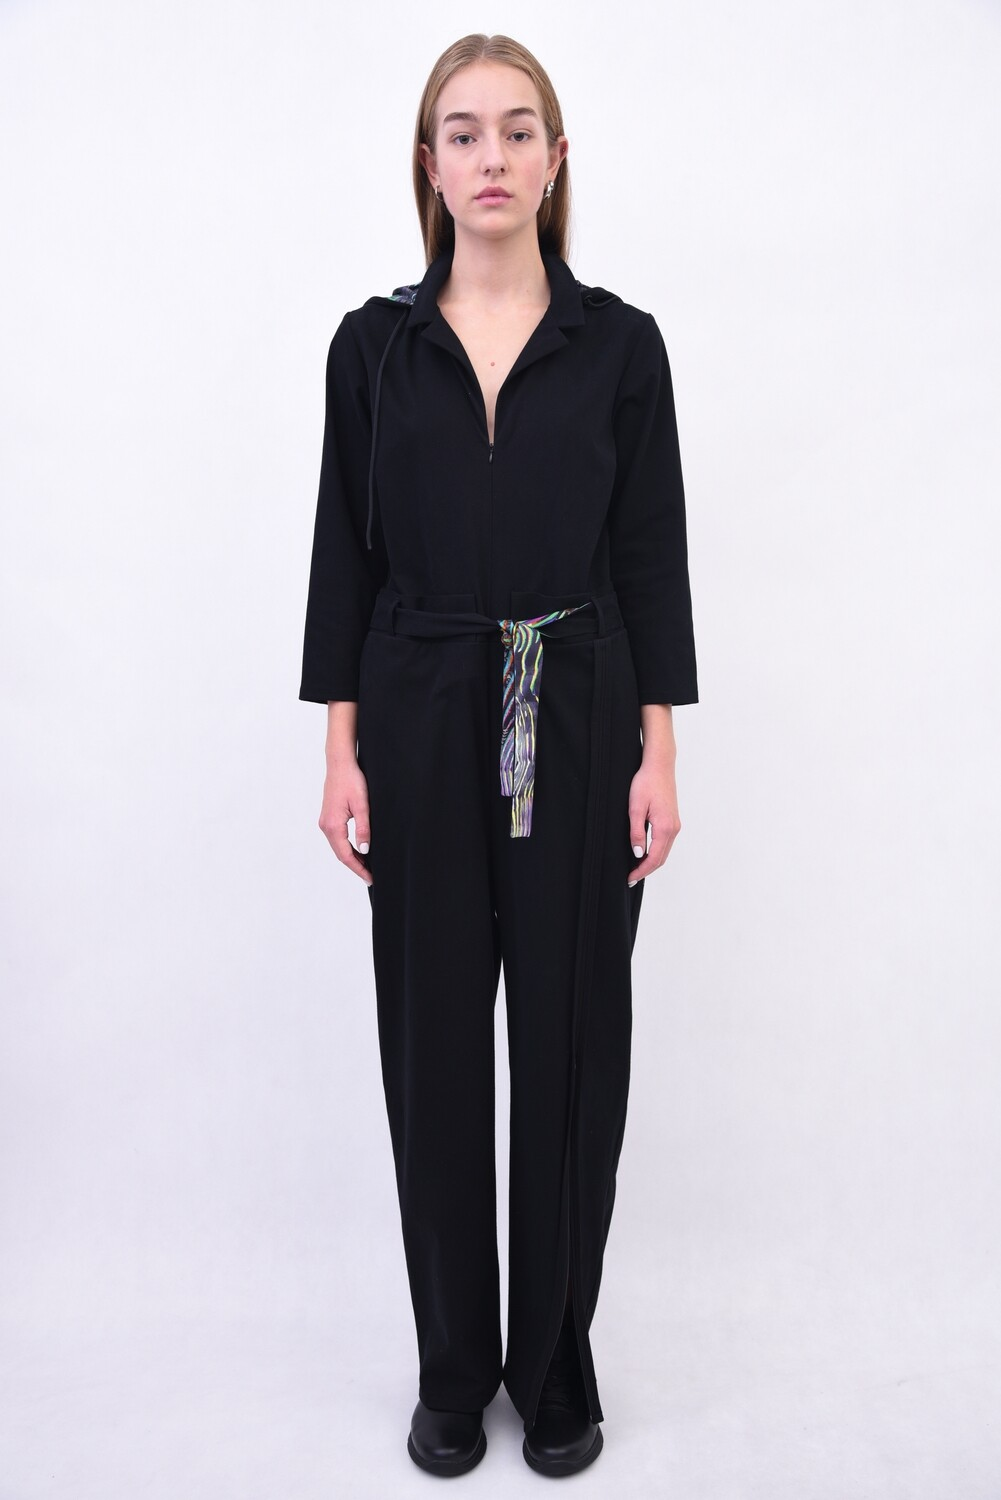 Black overall